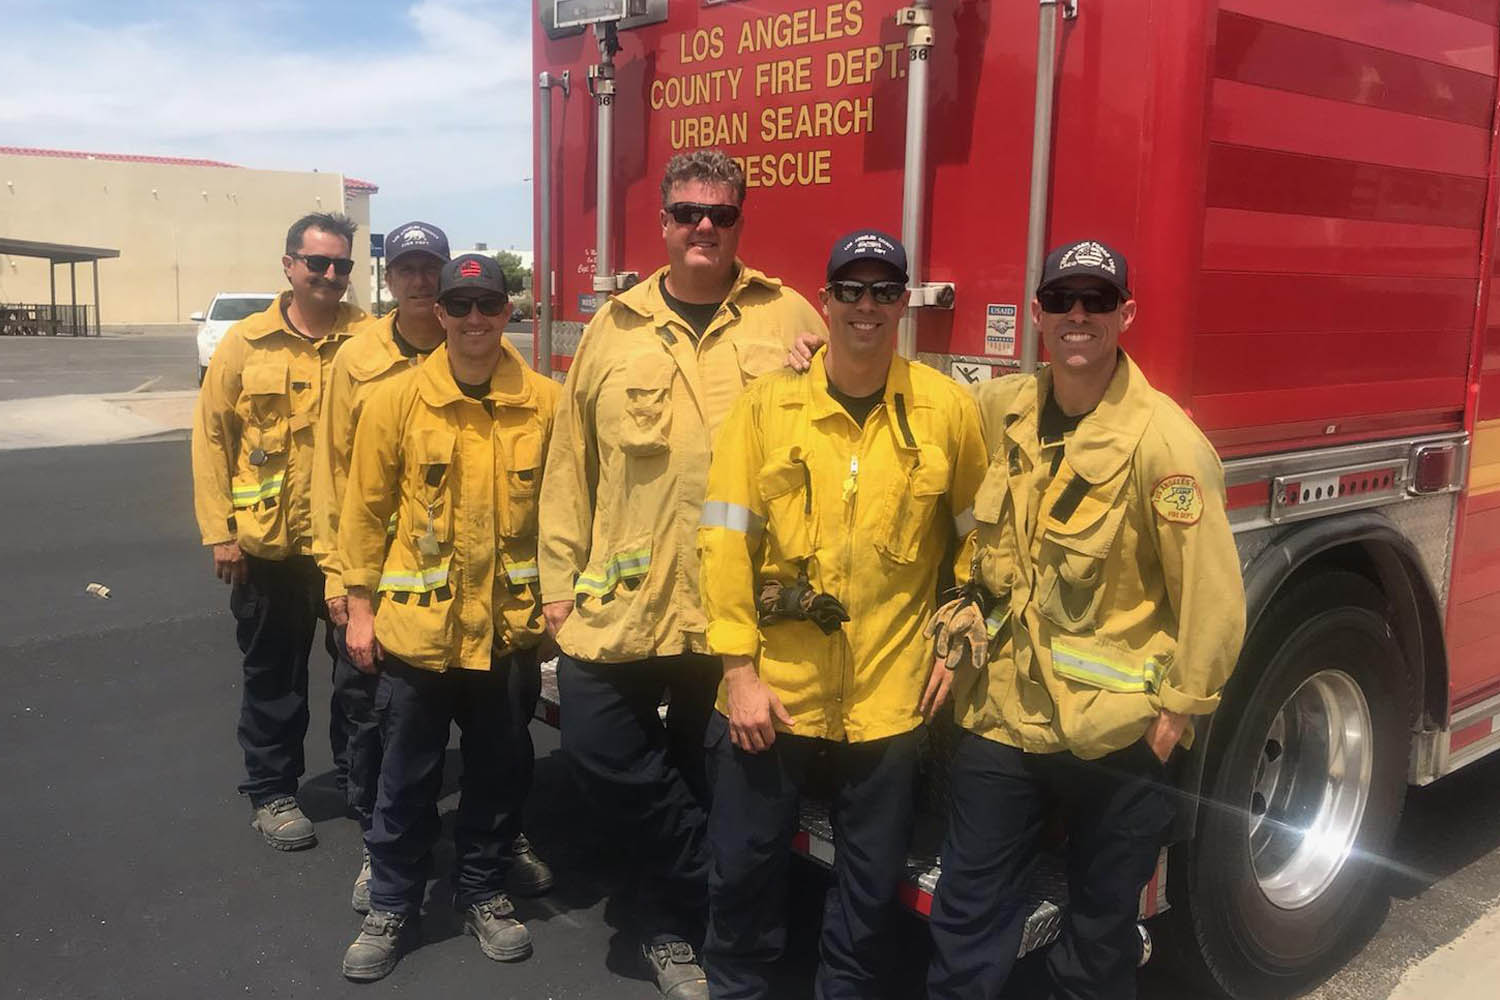 Shortly after last week's back-to-back earthquakes, the Los Angeles County Fire Department (LACoFD) deployed members of its Urban Search and Rescue (USAR) and Hazardous Materials (HazMat) teams to assist with recovery efforts in Kern County.